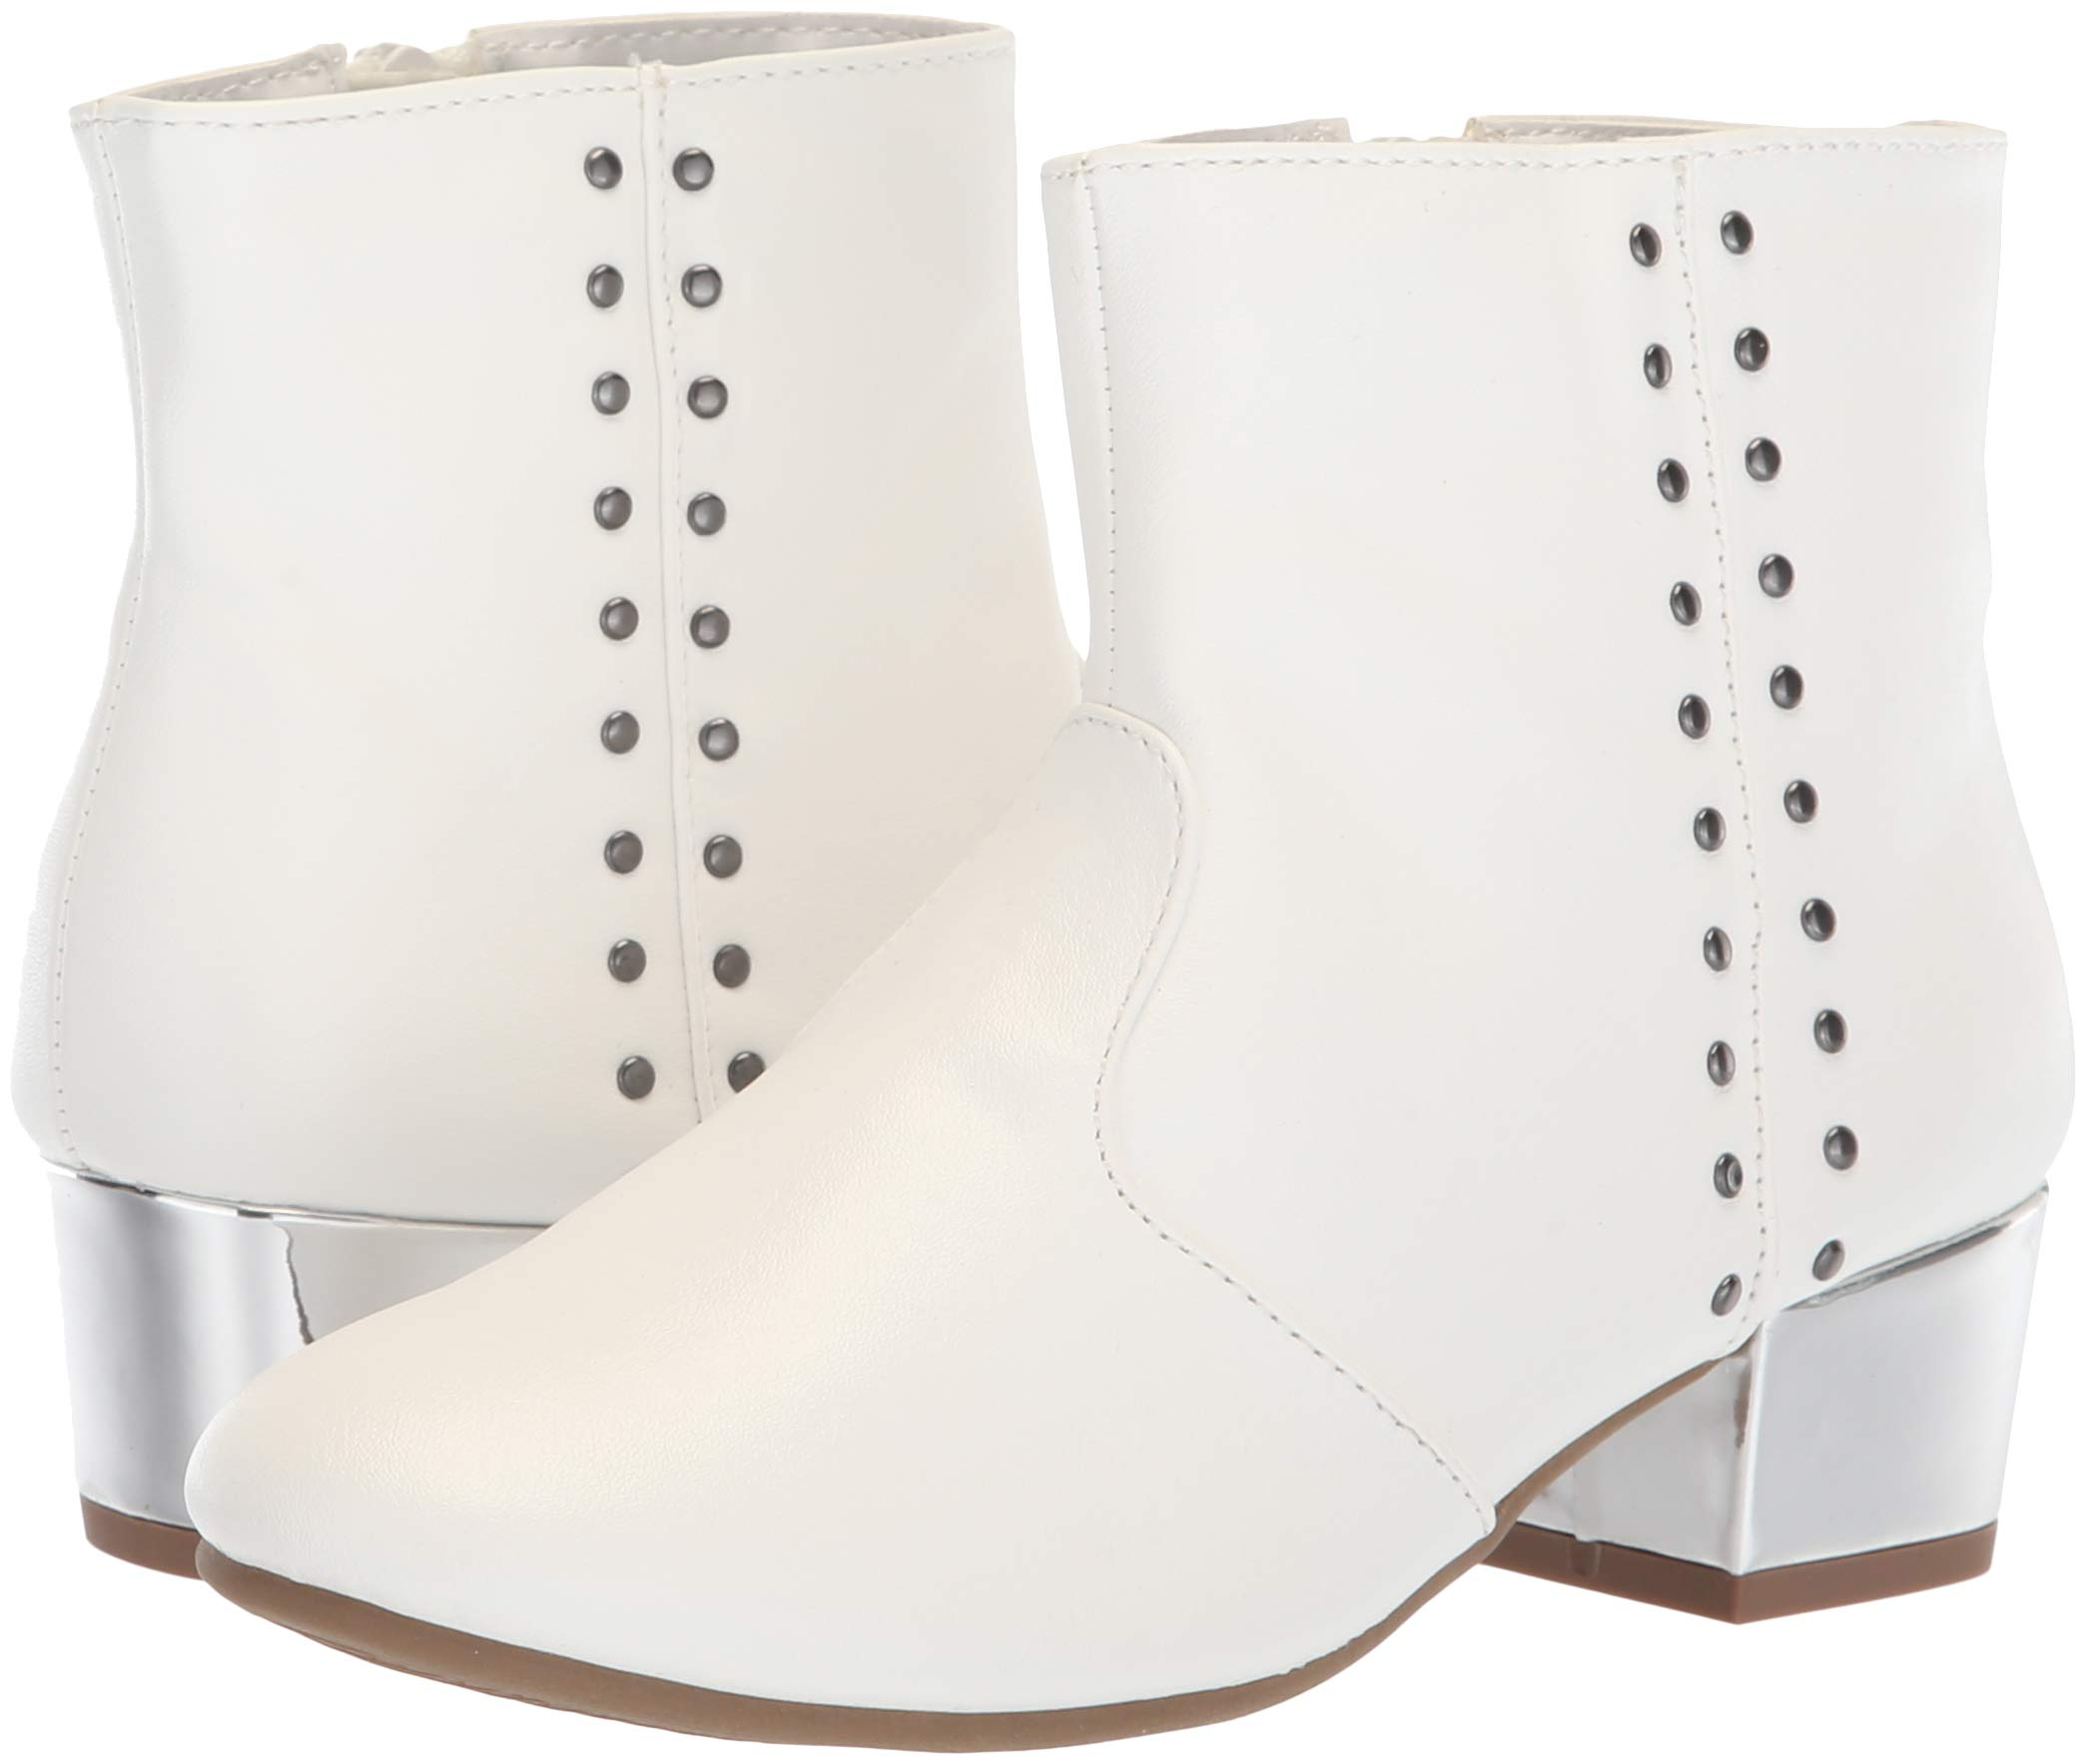 The Children's Place Girls' Bootie Fashion Boot, White, Youth 3 Child US Little Kid by The Children's Place (Image #6)